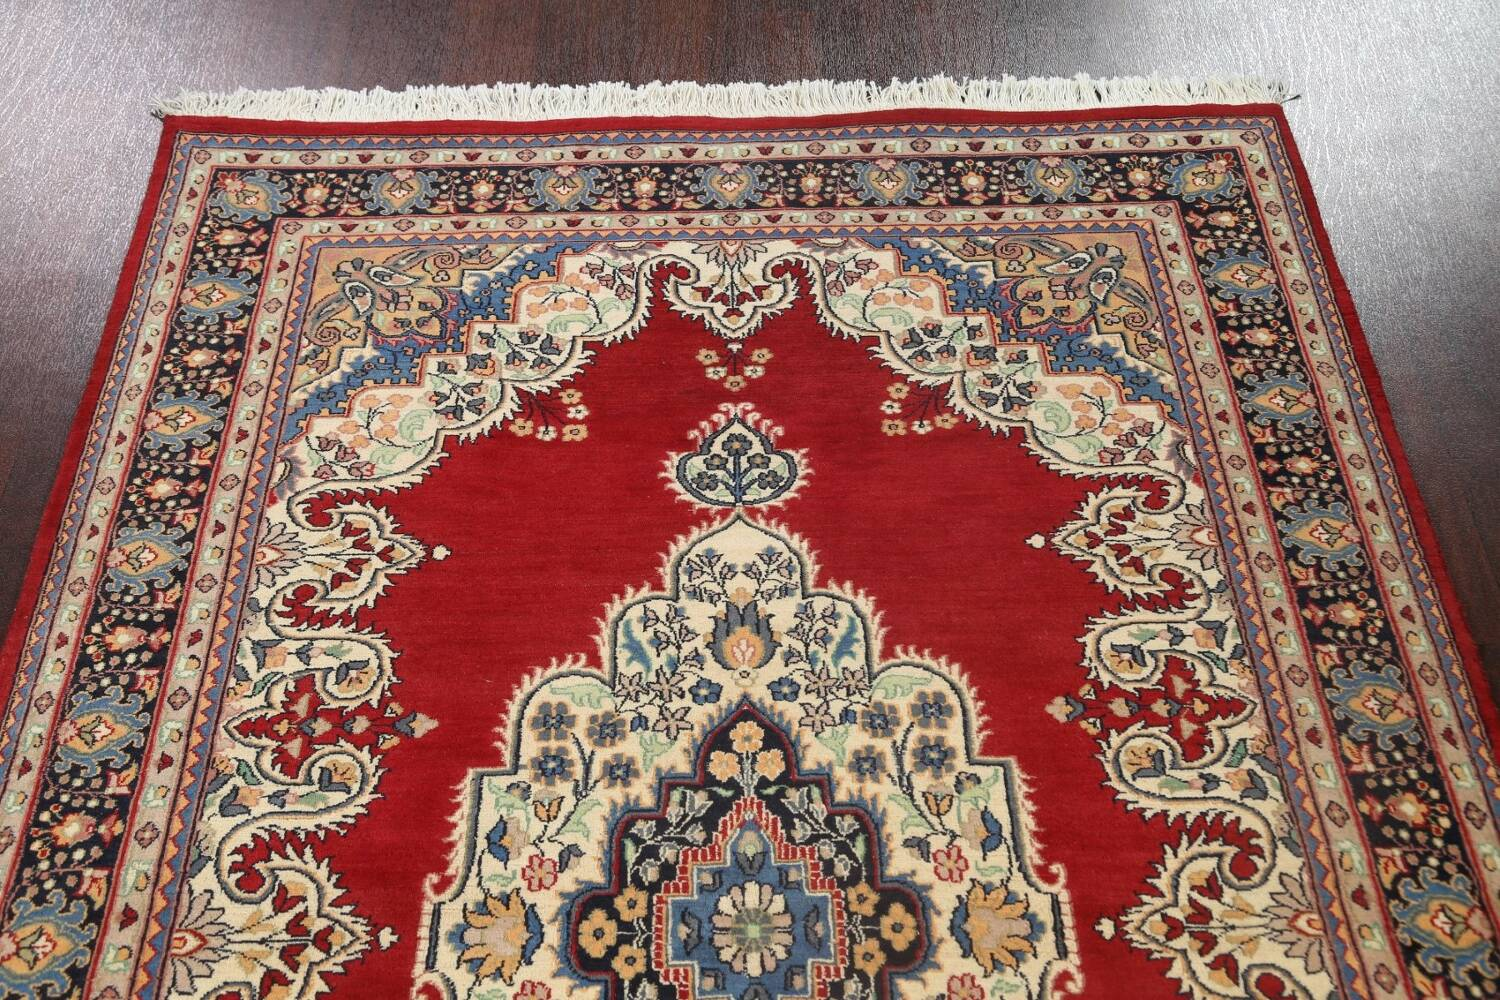 100% Vegetable Dye Red Tabriz Oriental Area Rug 5x7 image 9